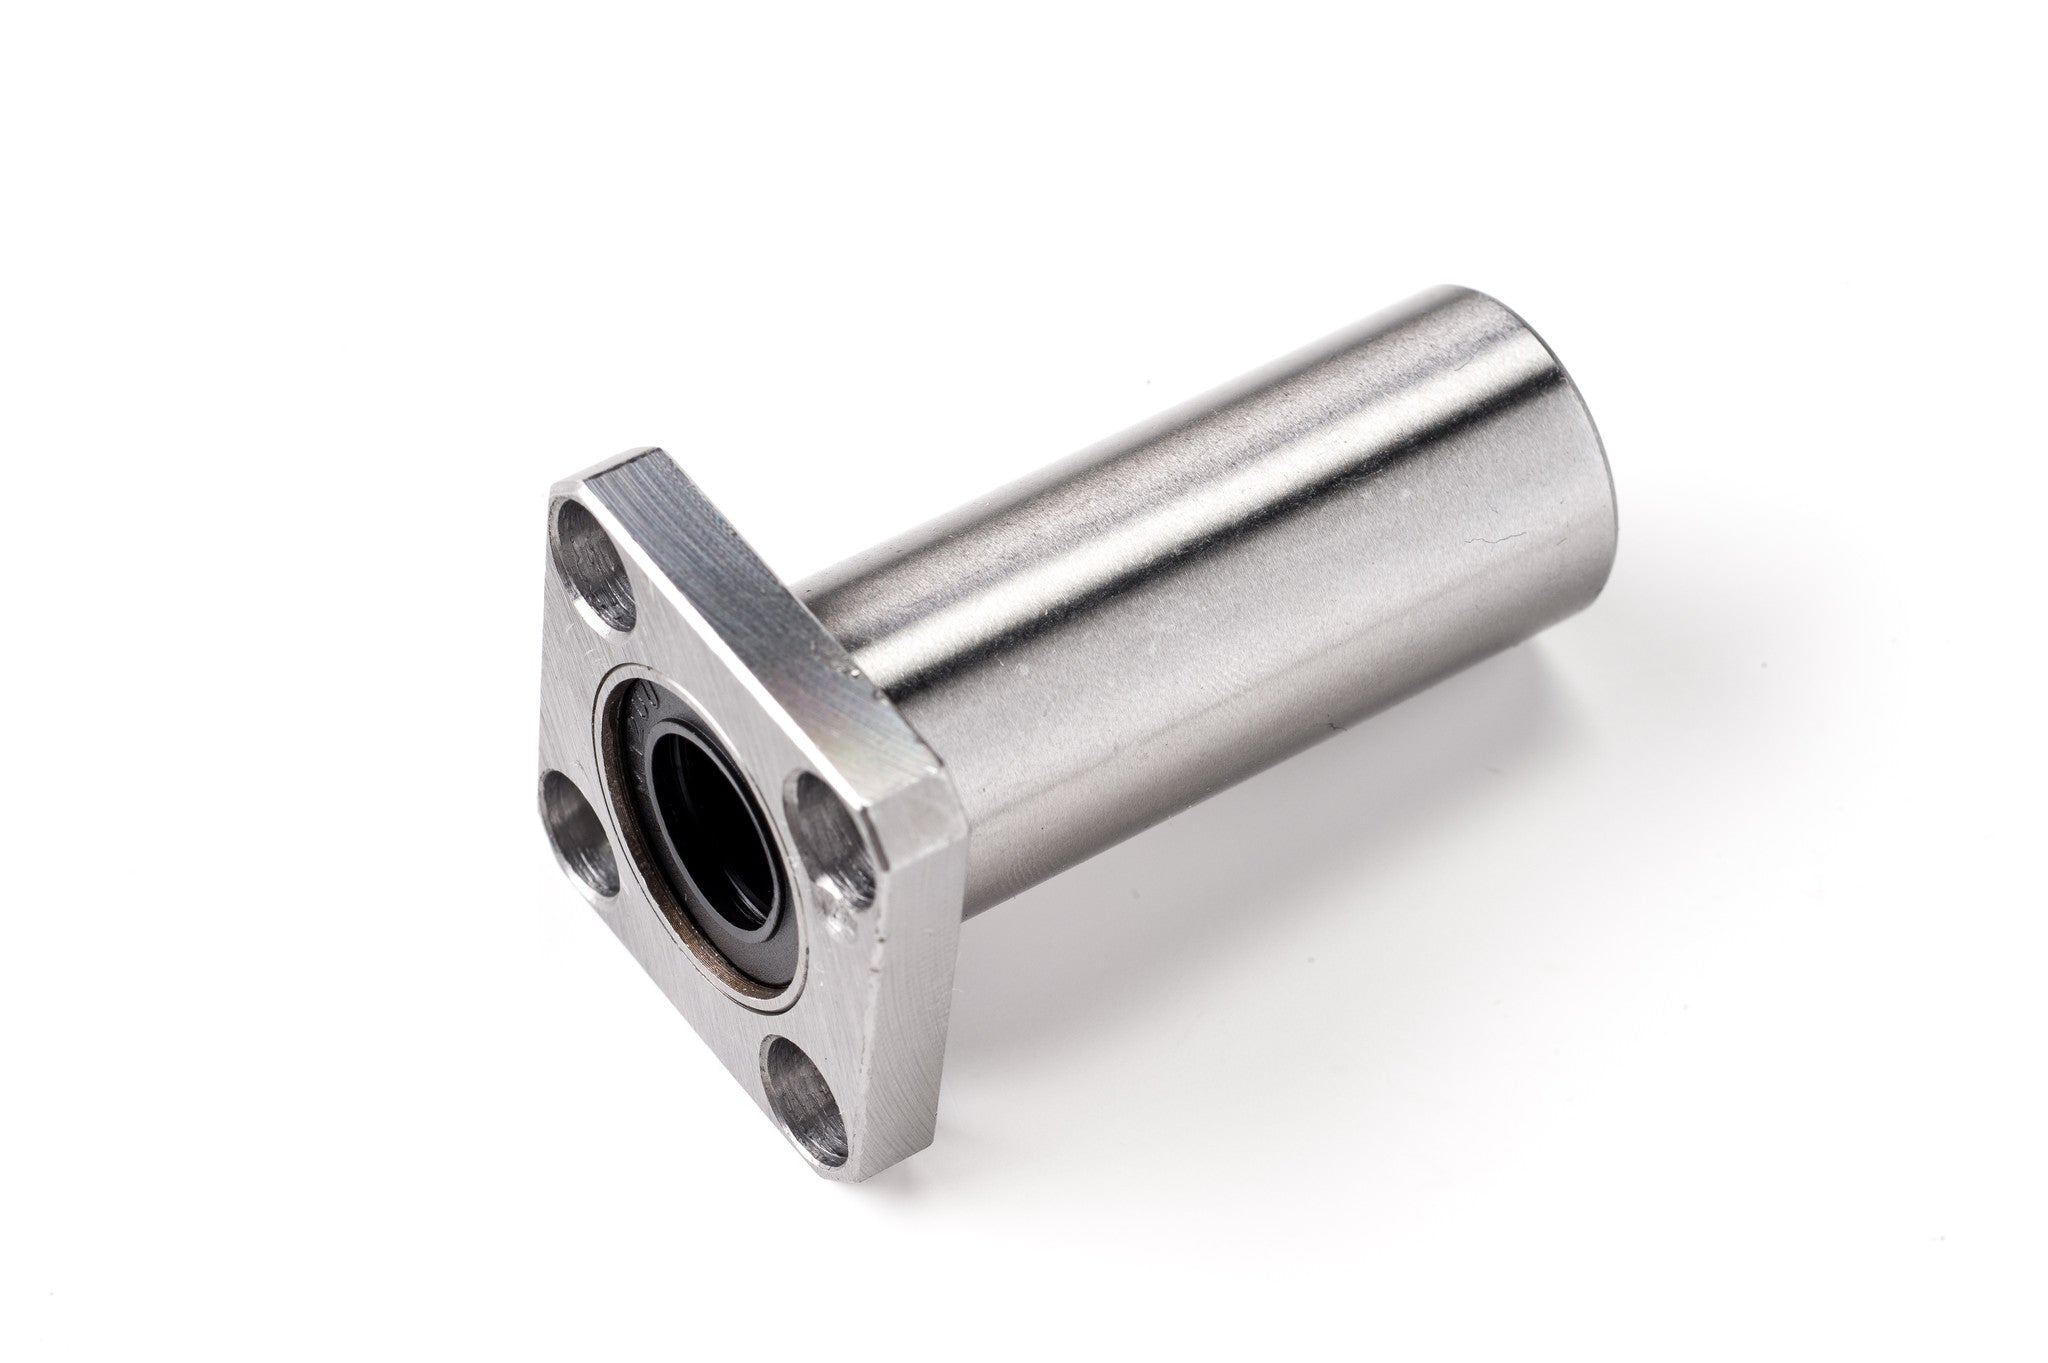 UM2 (1170) Square Flanged Linear Bearing LMK12LUU